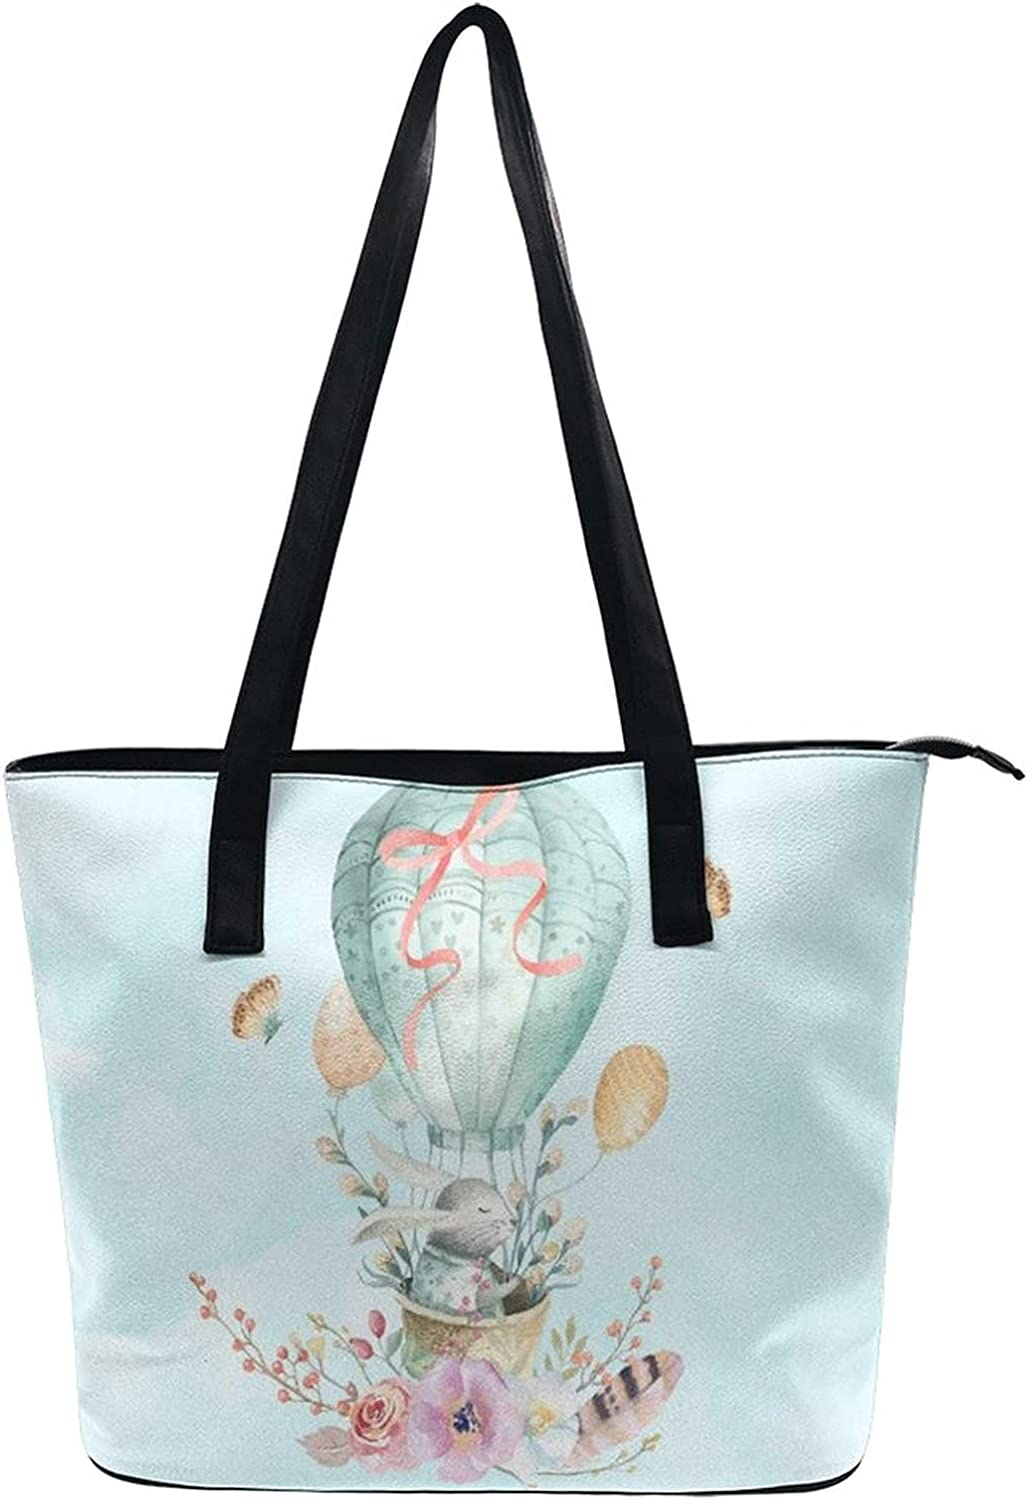 Tote Satchel Bag Shoulder Beach Bags For Women Lady Travel Shopping Bags